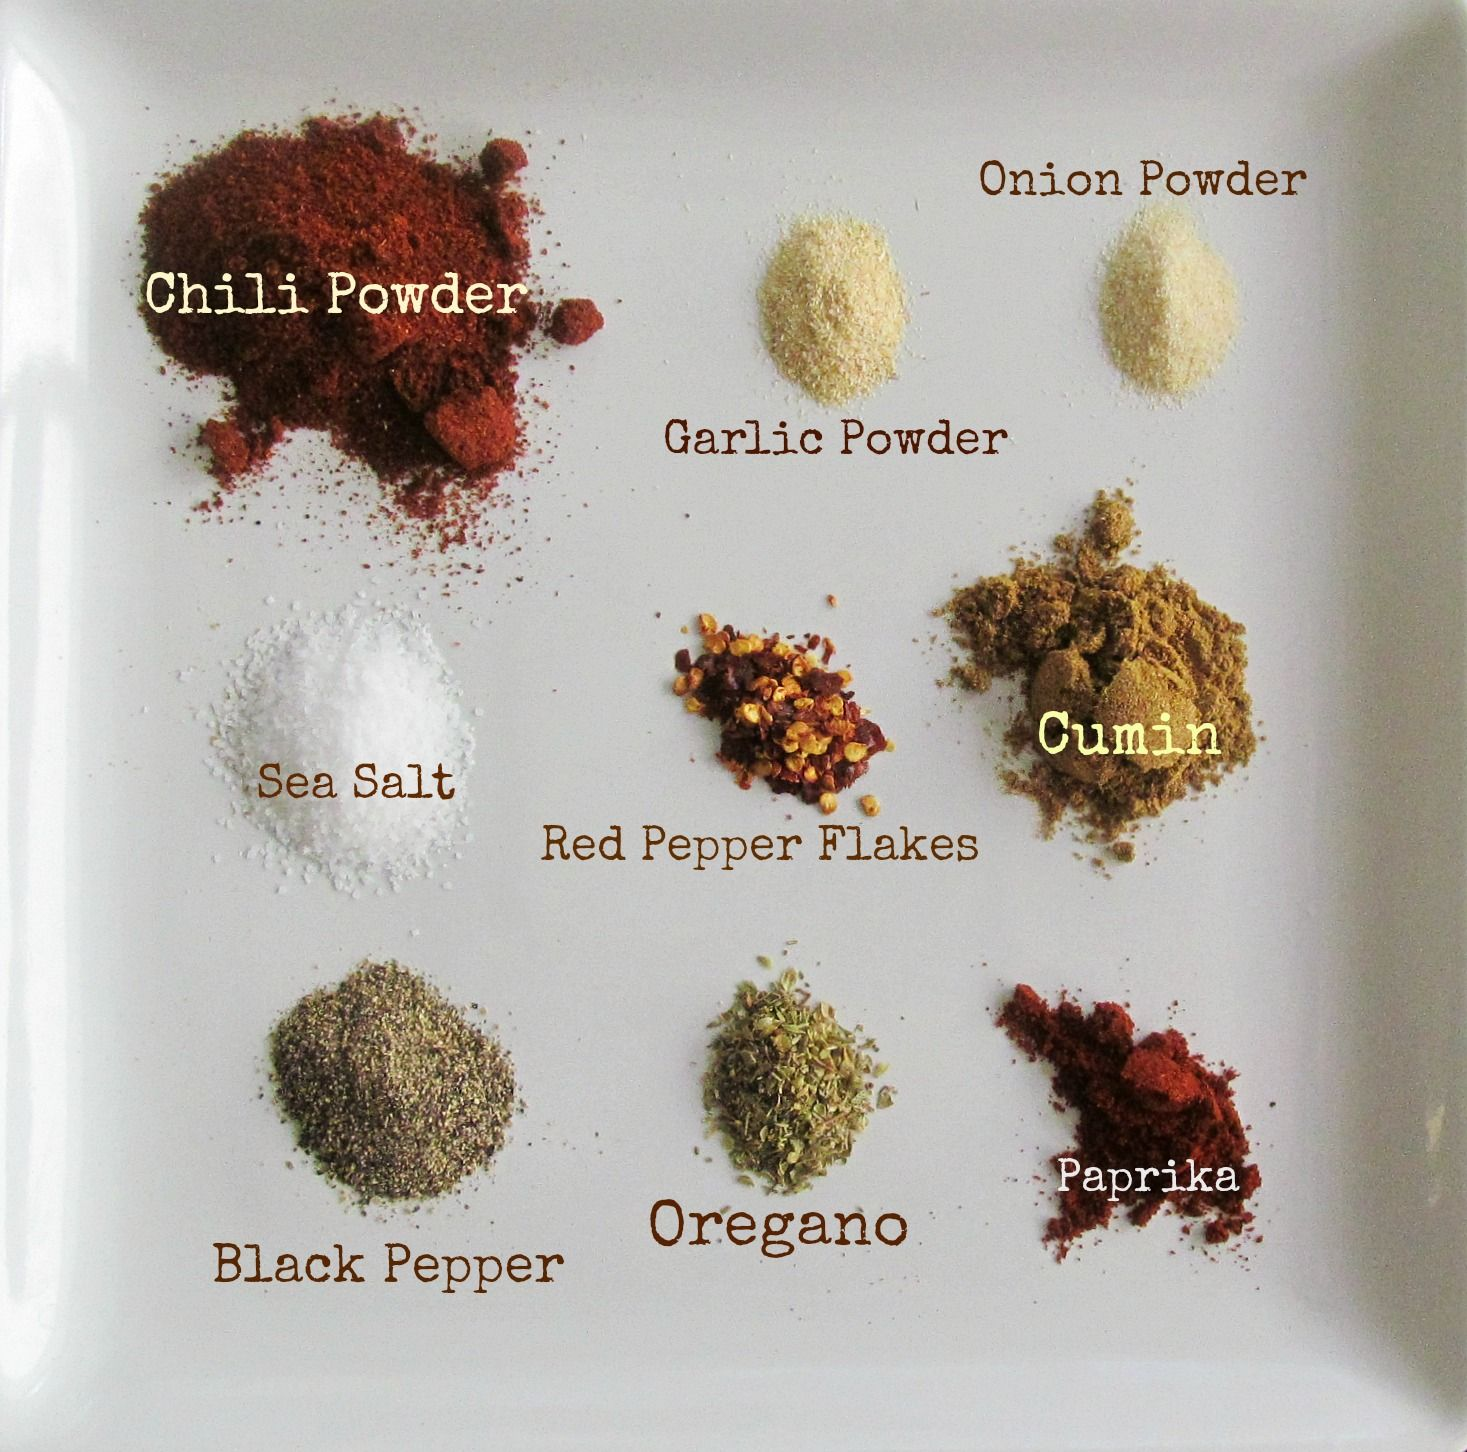 old el paso taco spice mix instructions